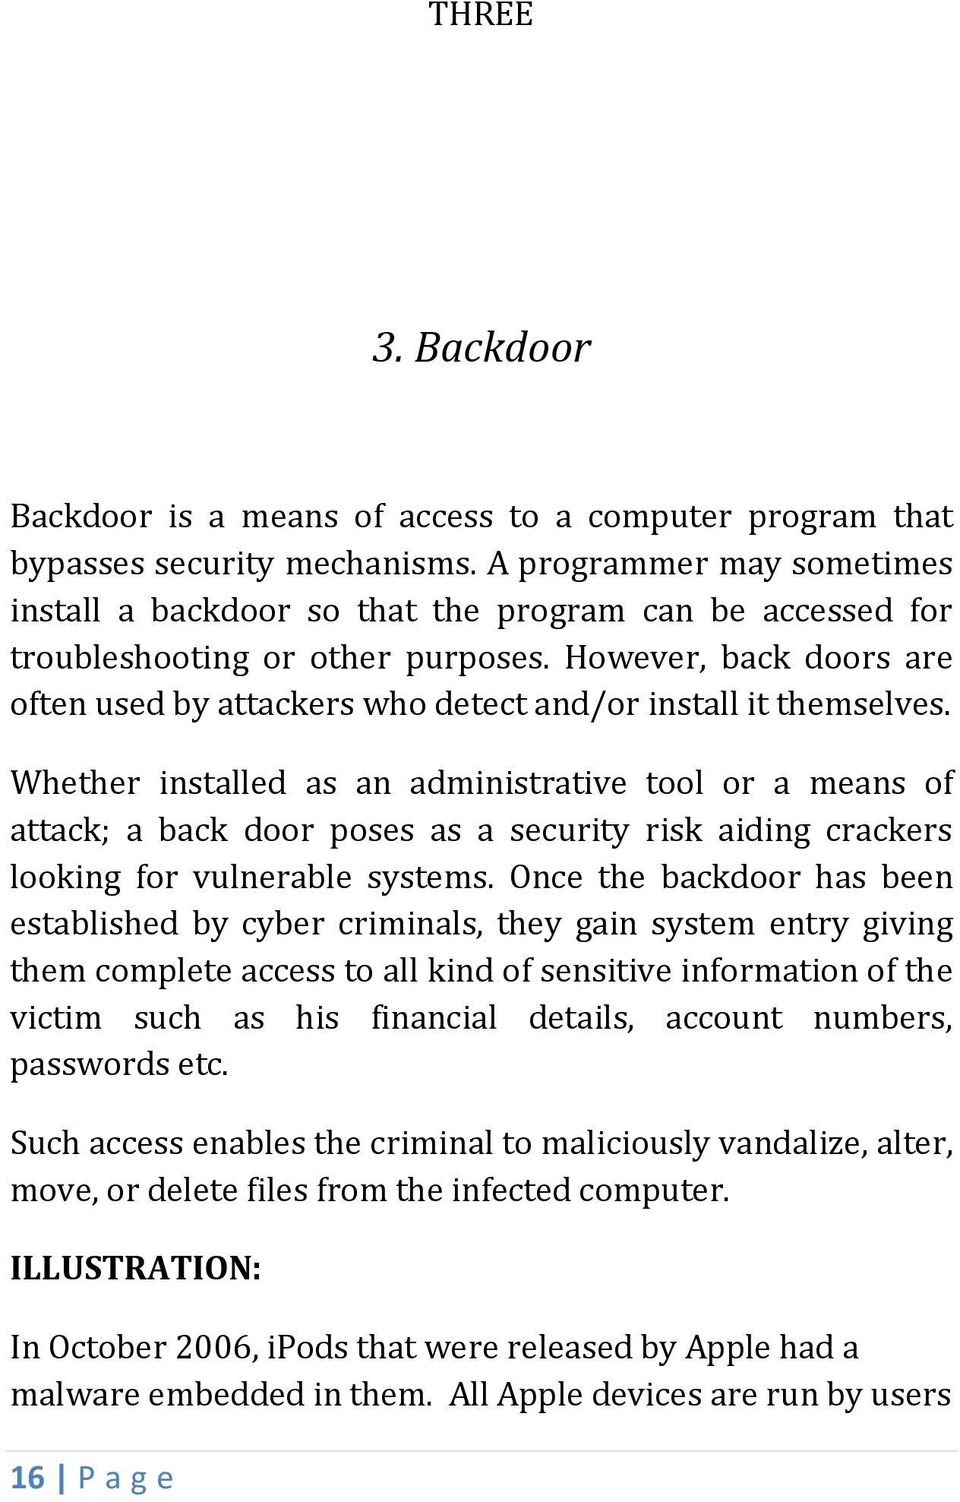 However, back doors are often used by attackers who detect and/or install it themselves.